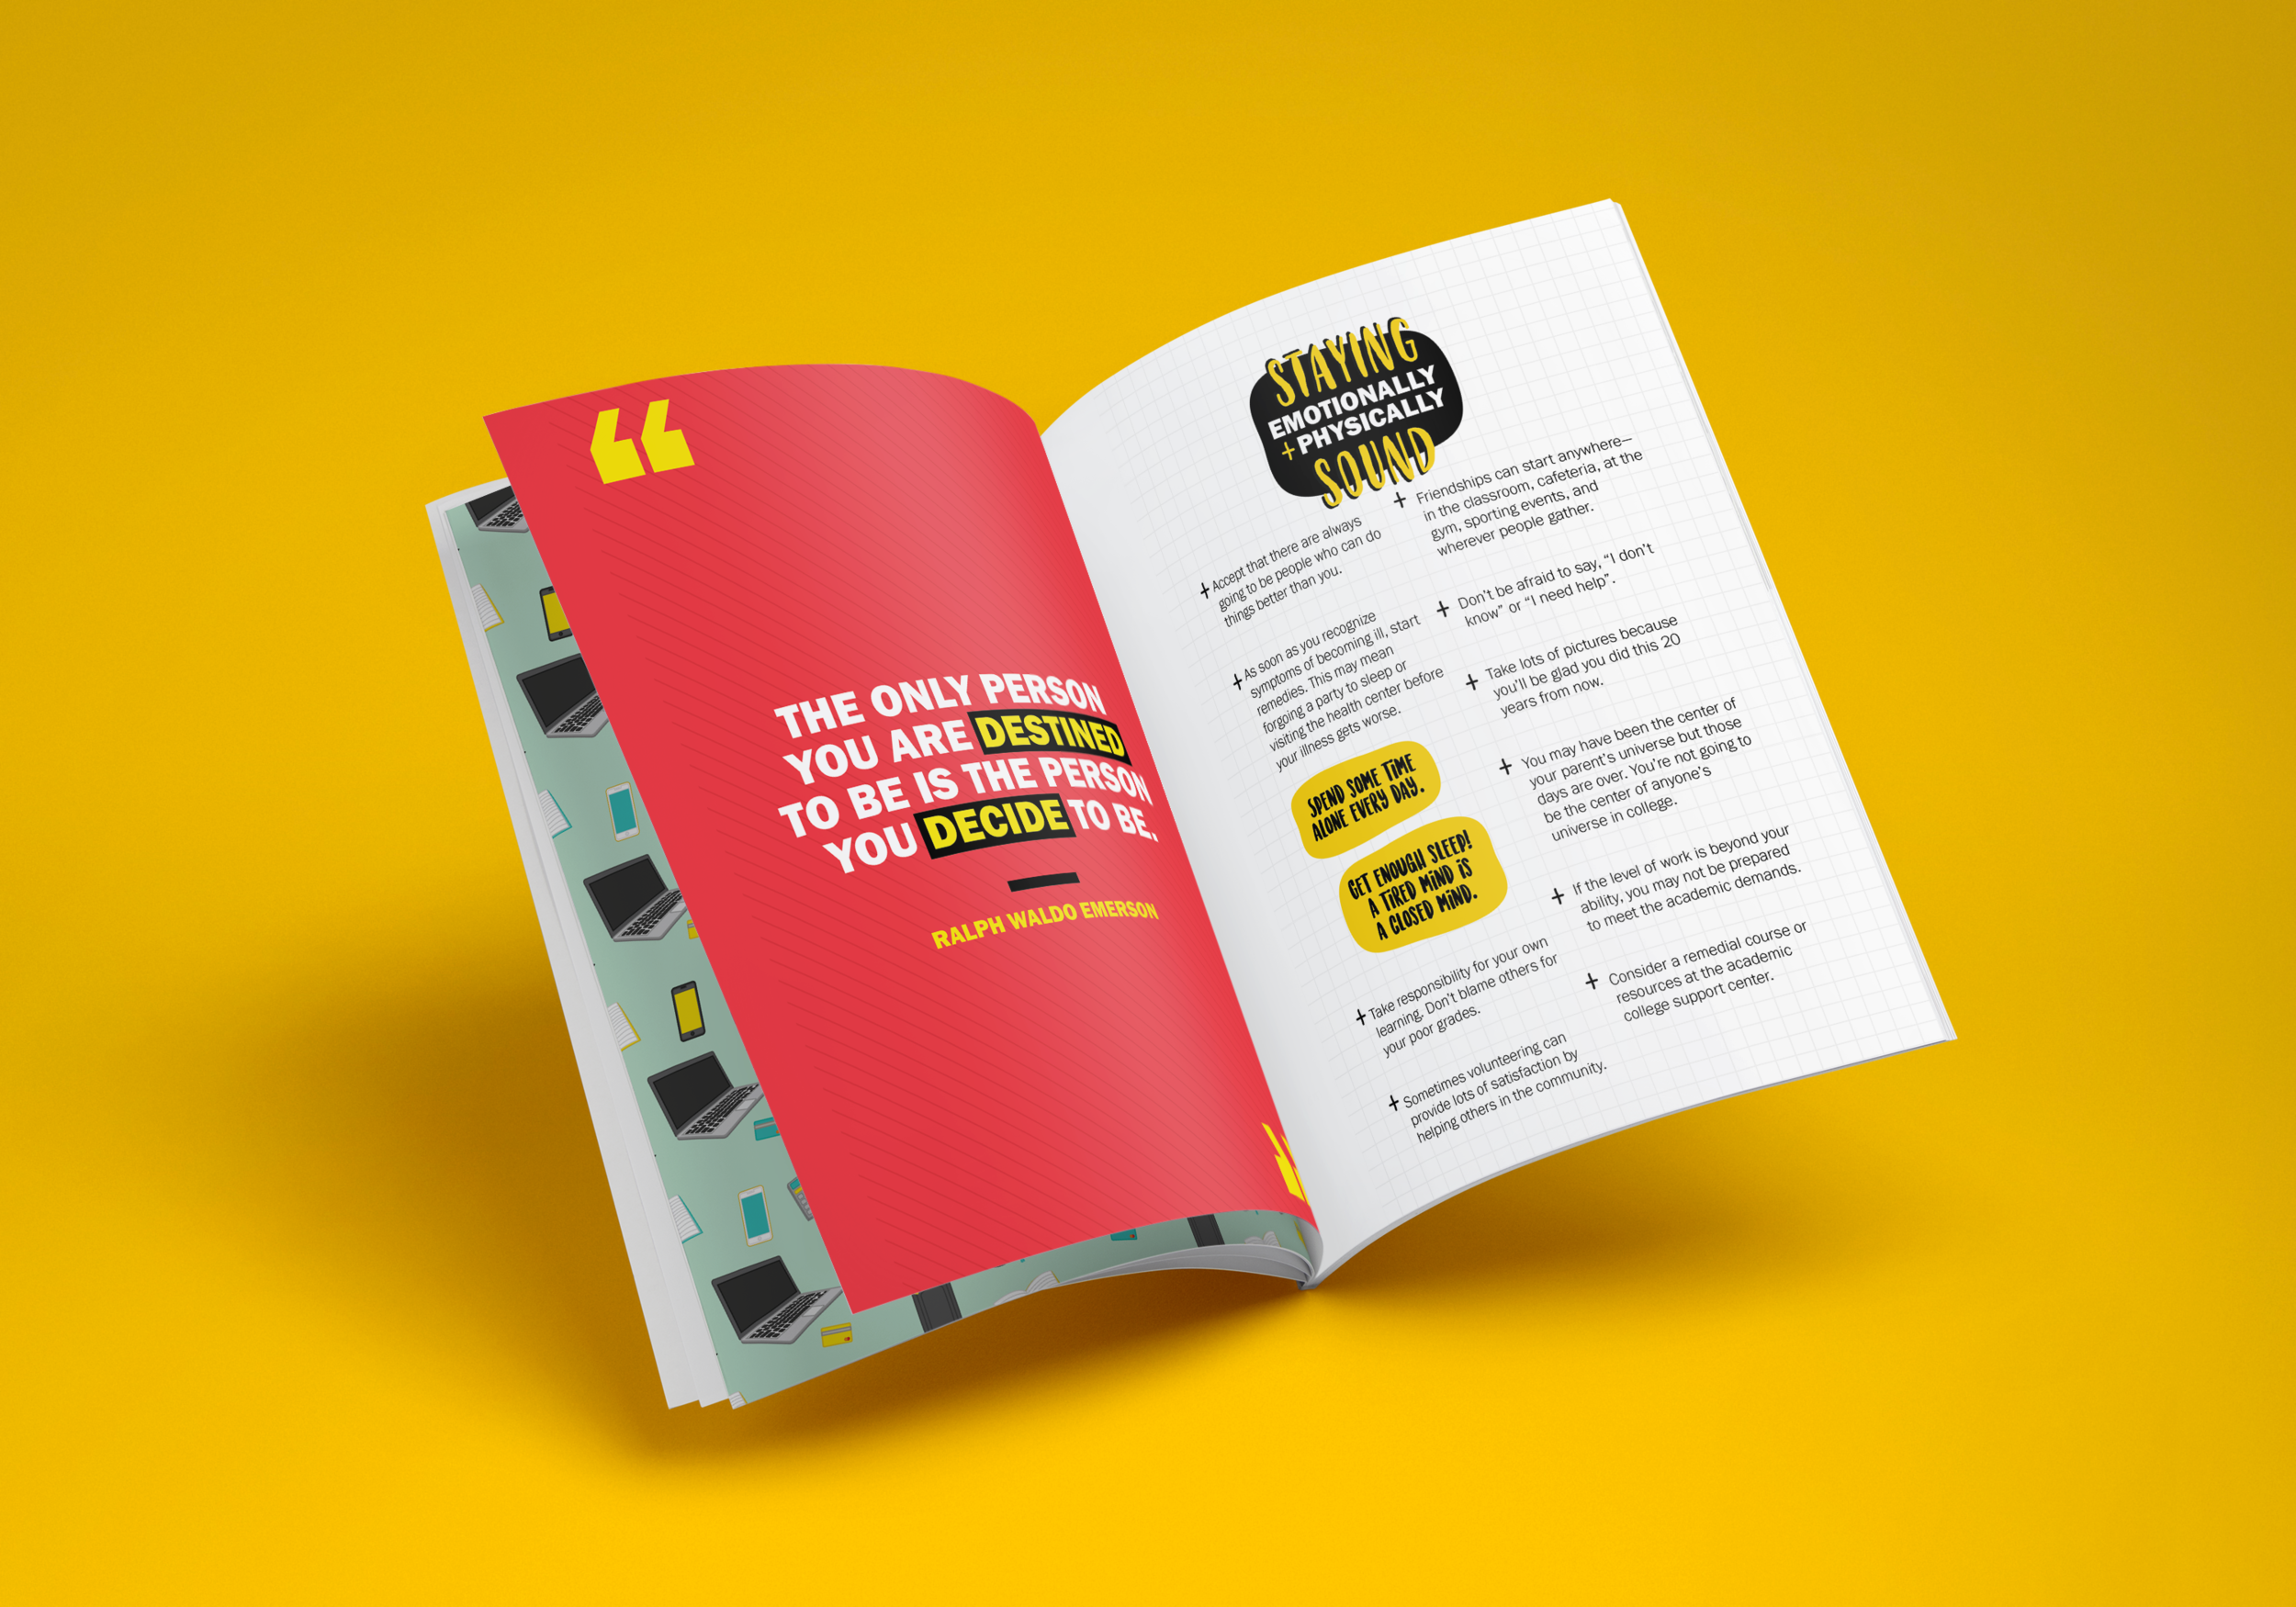 Making it to Graduation: Expert Advice from College Professors (Taking on the Challenge)   Book Design and Layout